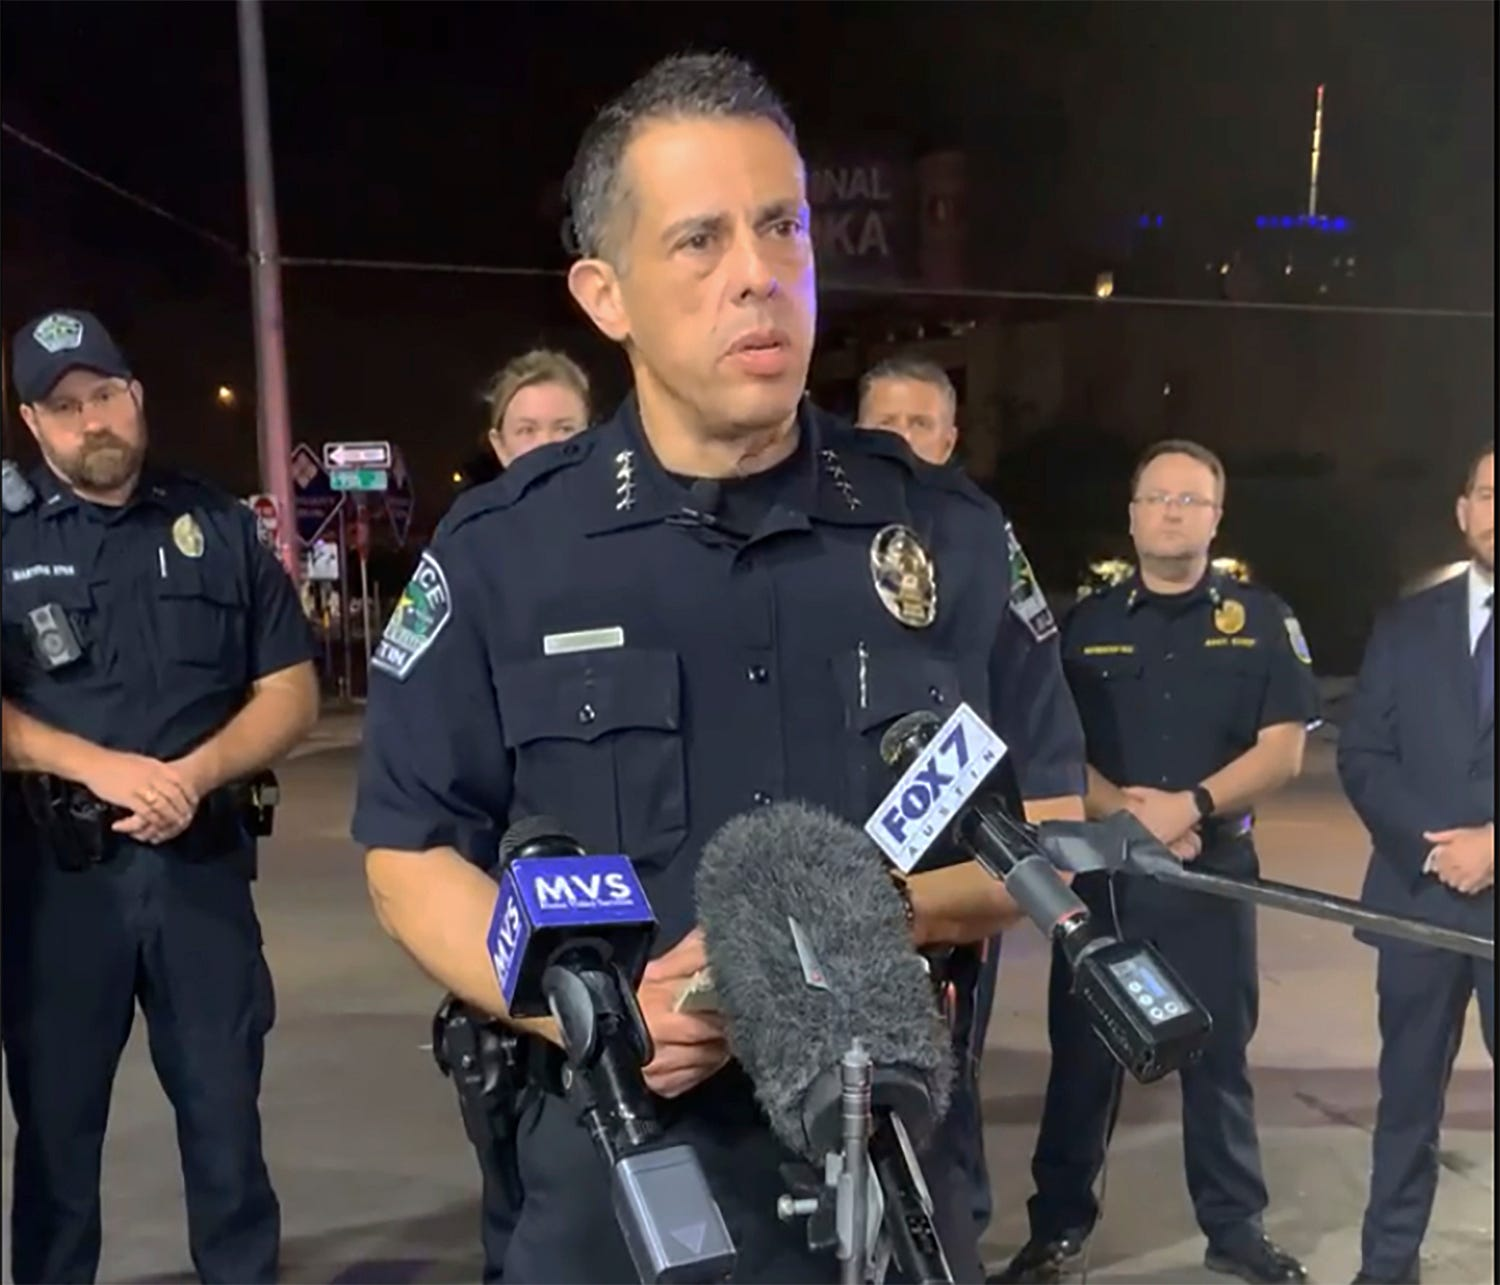 Police: Attacker wounds 13 in Texas shooting, escapes 2